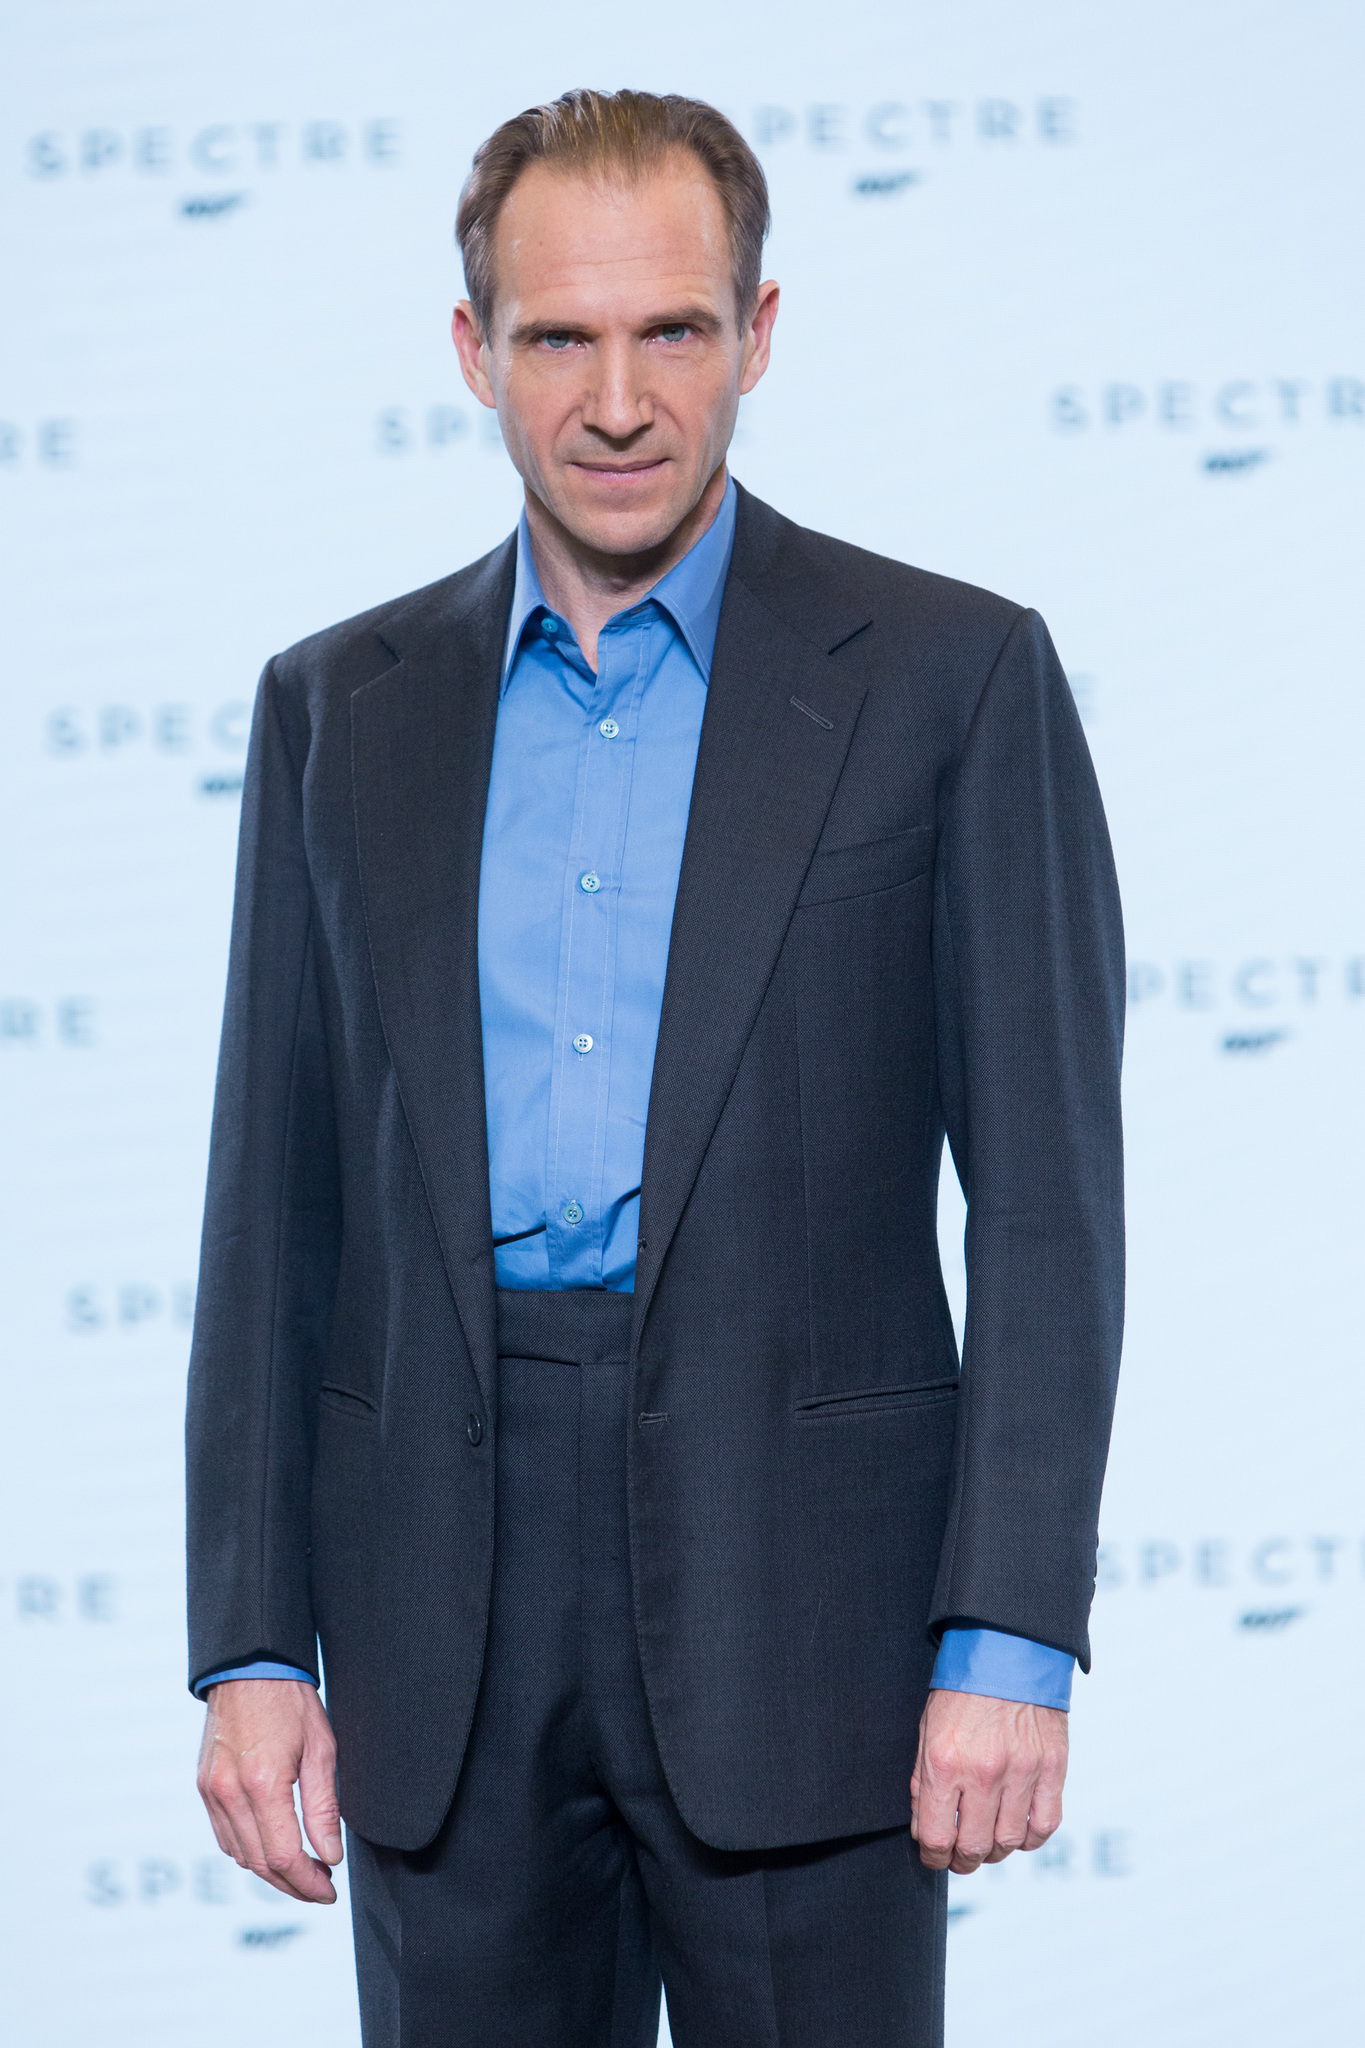 Ralph Fiennes at an event for Spectre (2015)